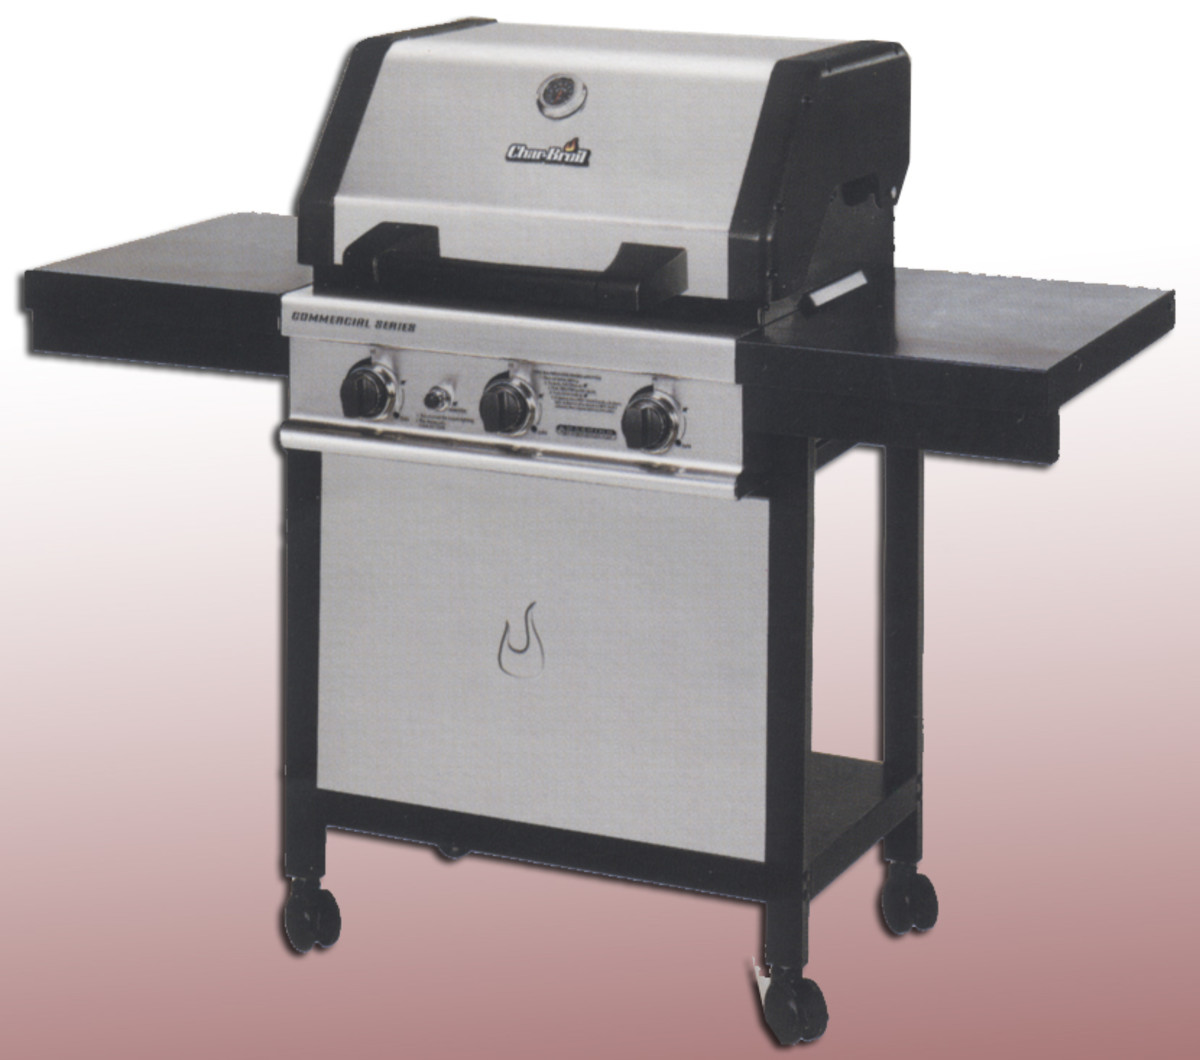 Charbroil commercial series bbq 4632210 withut the 12,000 btu side burner.